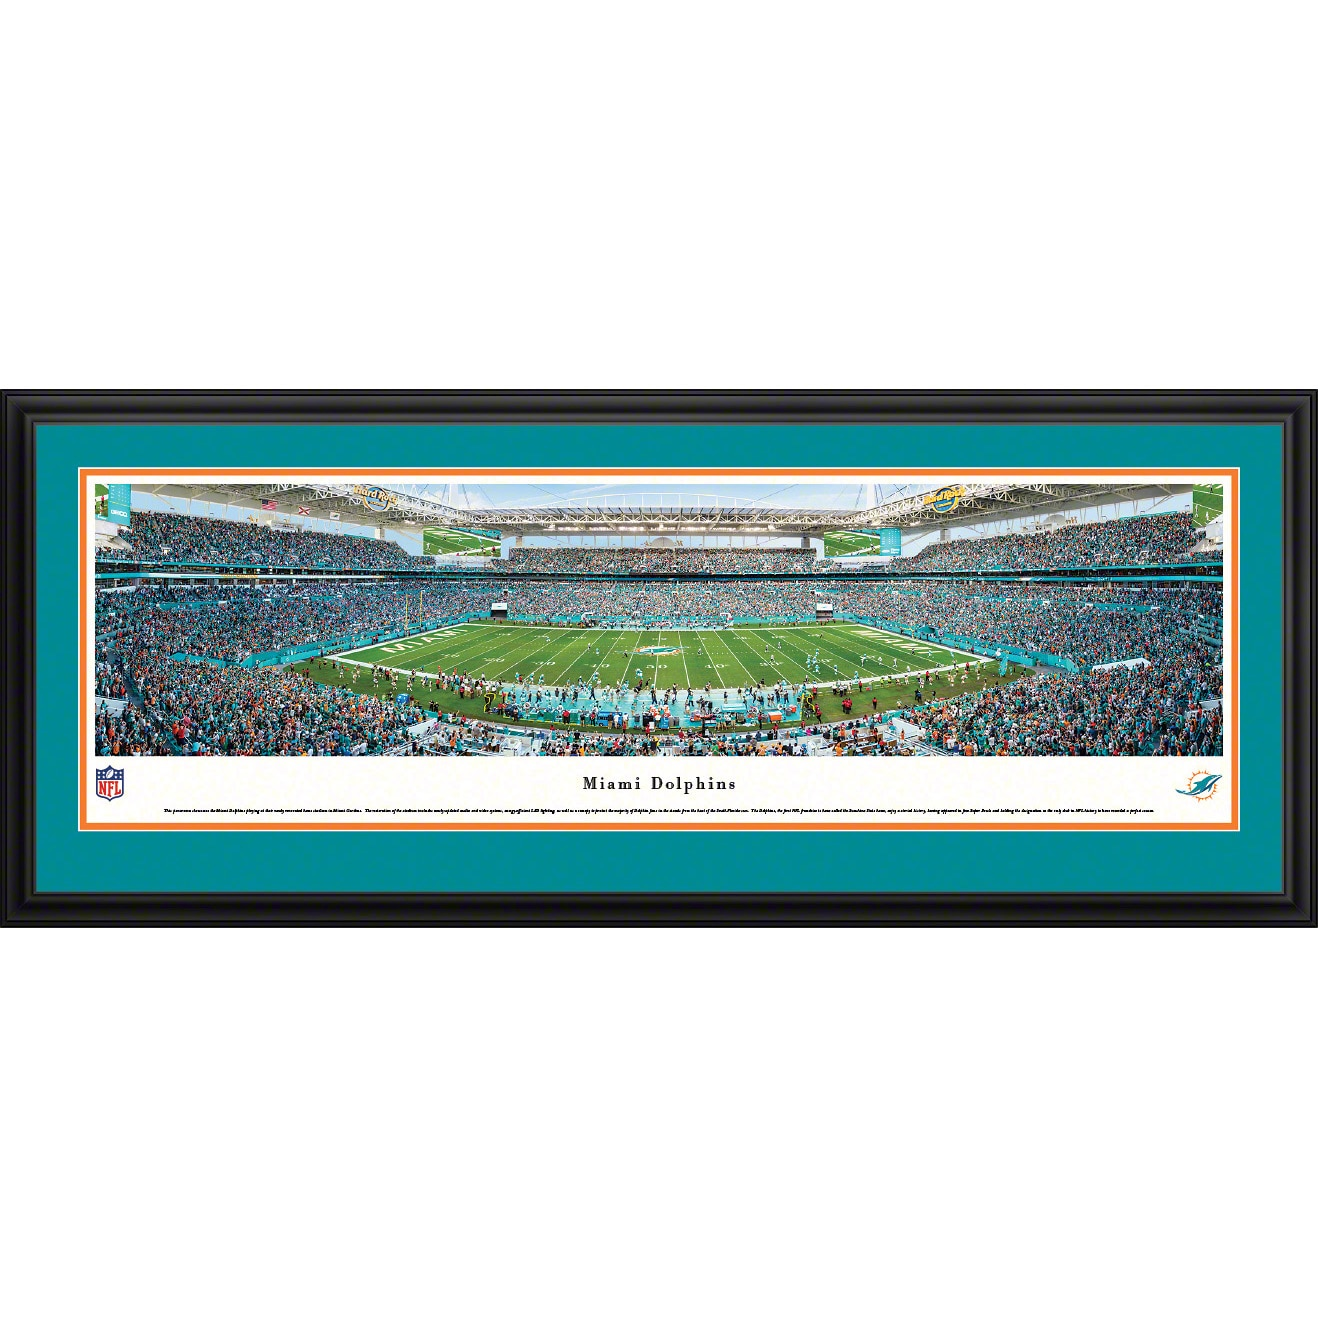 "Miami Dolphins 18"" x 44"" Deluxe Frame Panoramic Photo"